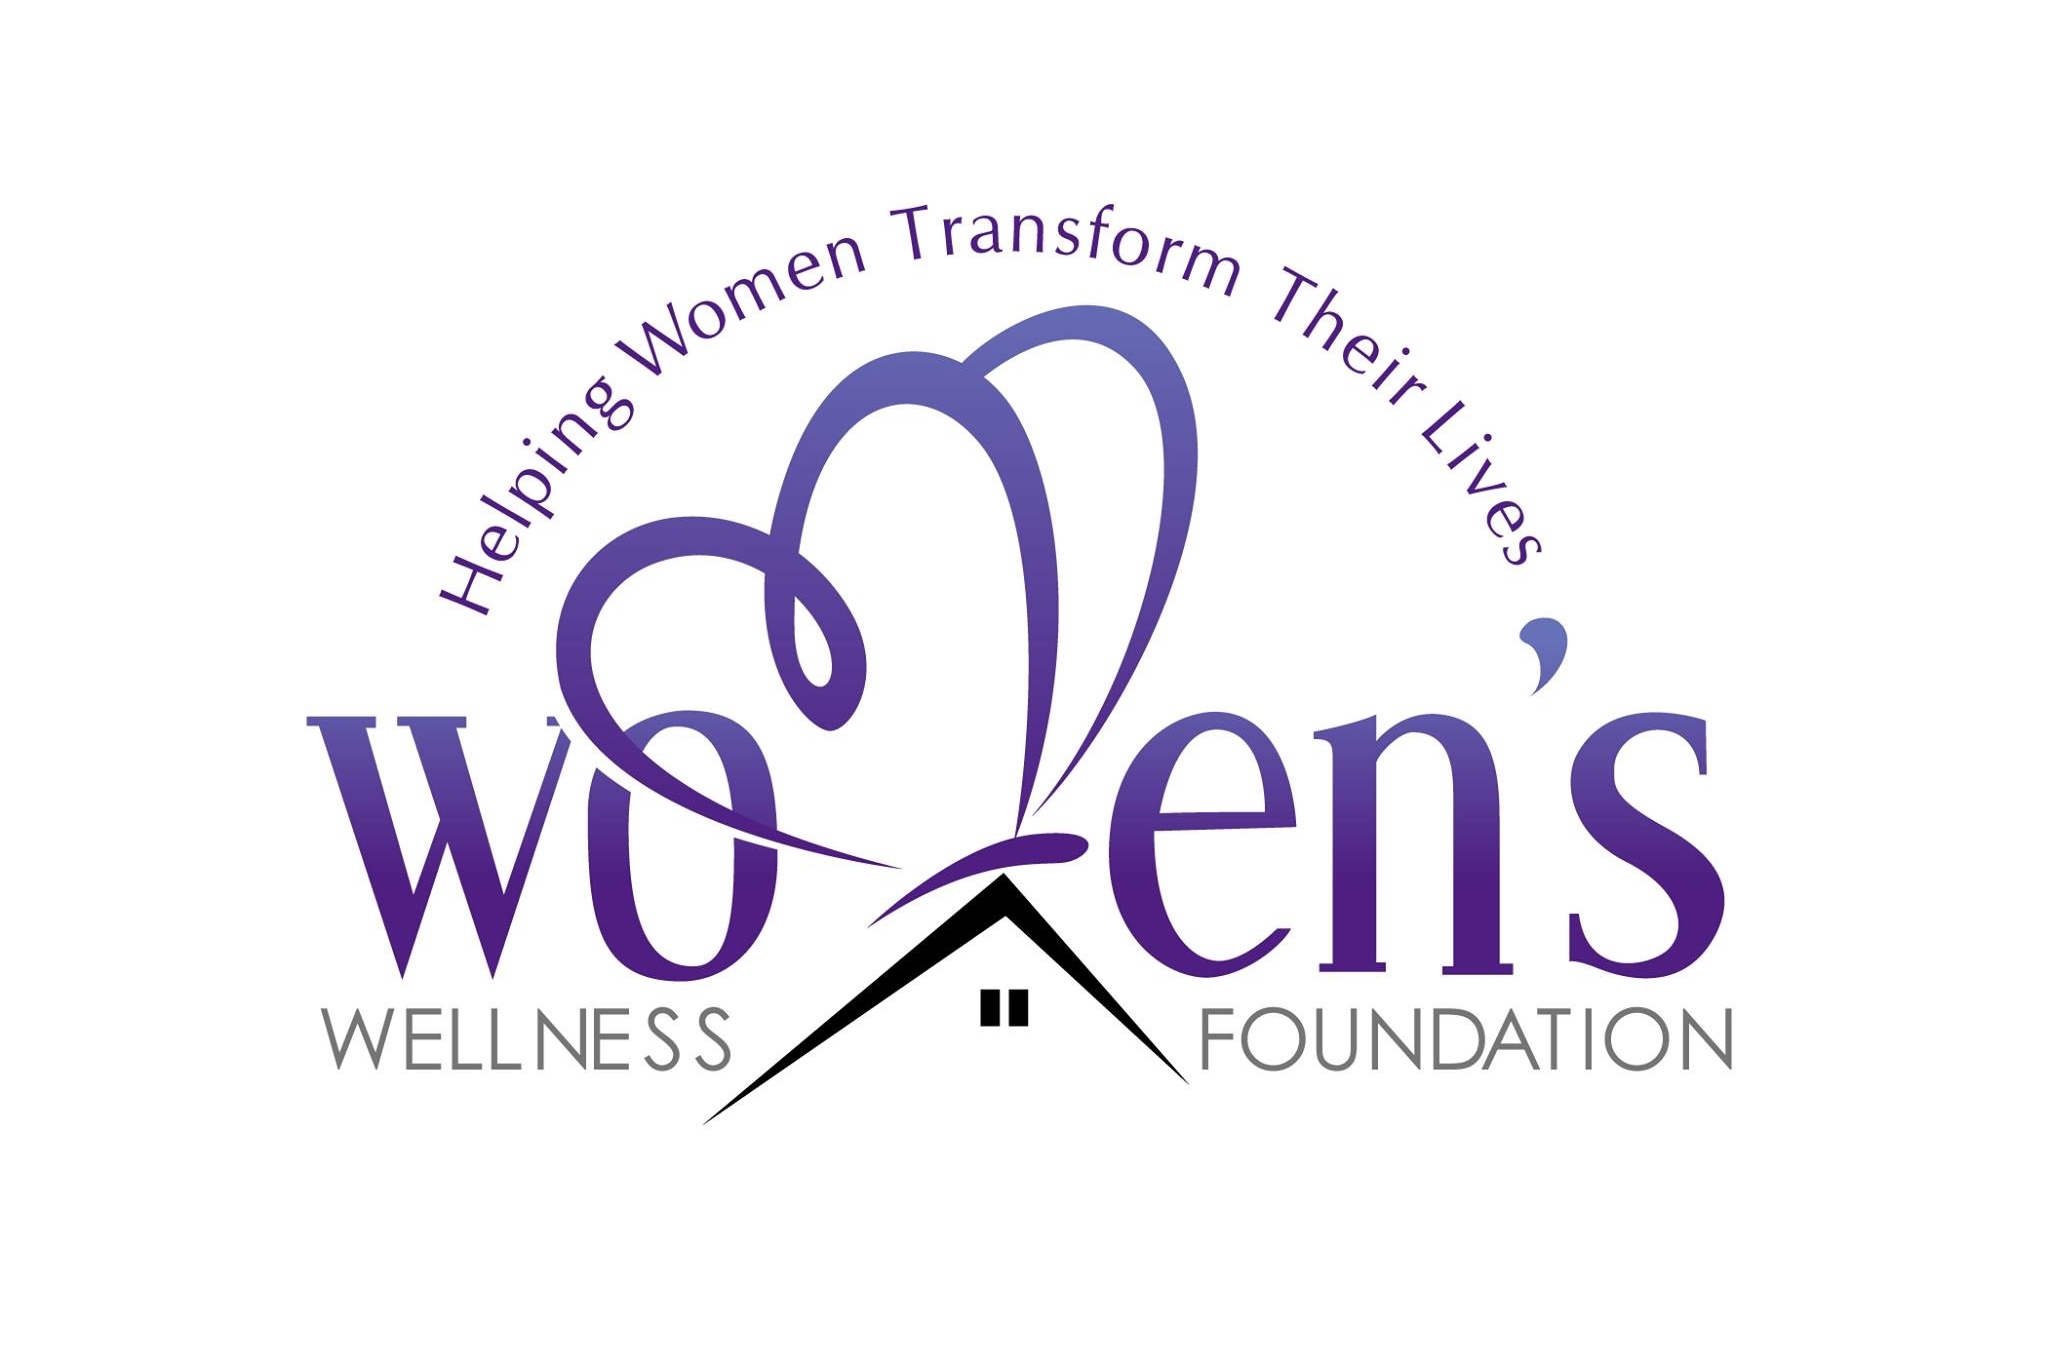 Find help or make a contribution at  womenswellnessfoundation.org